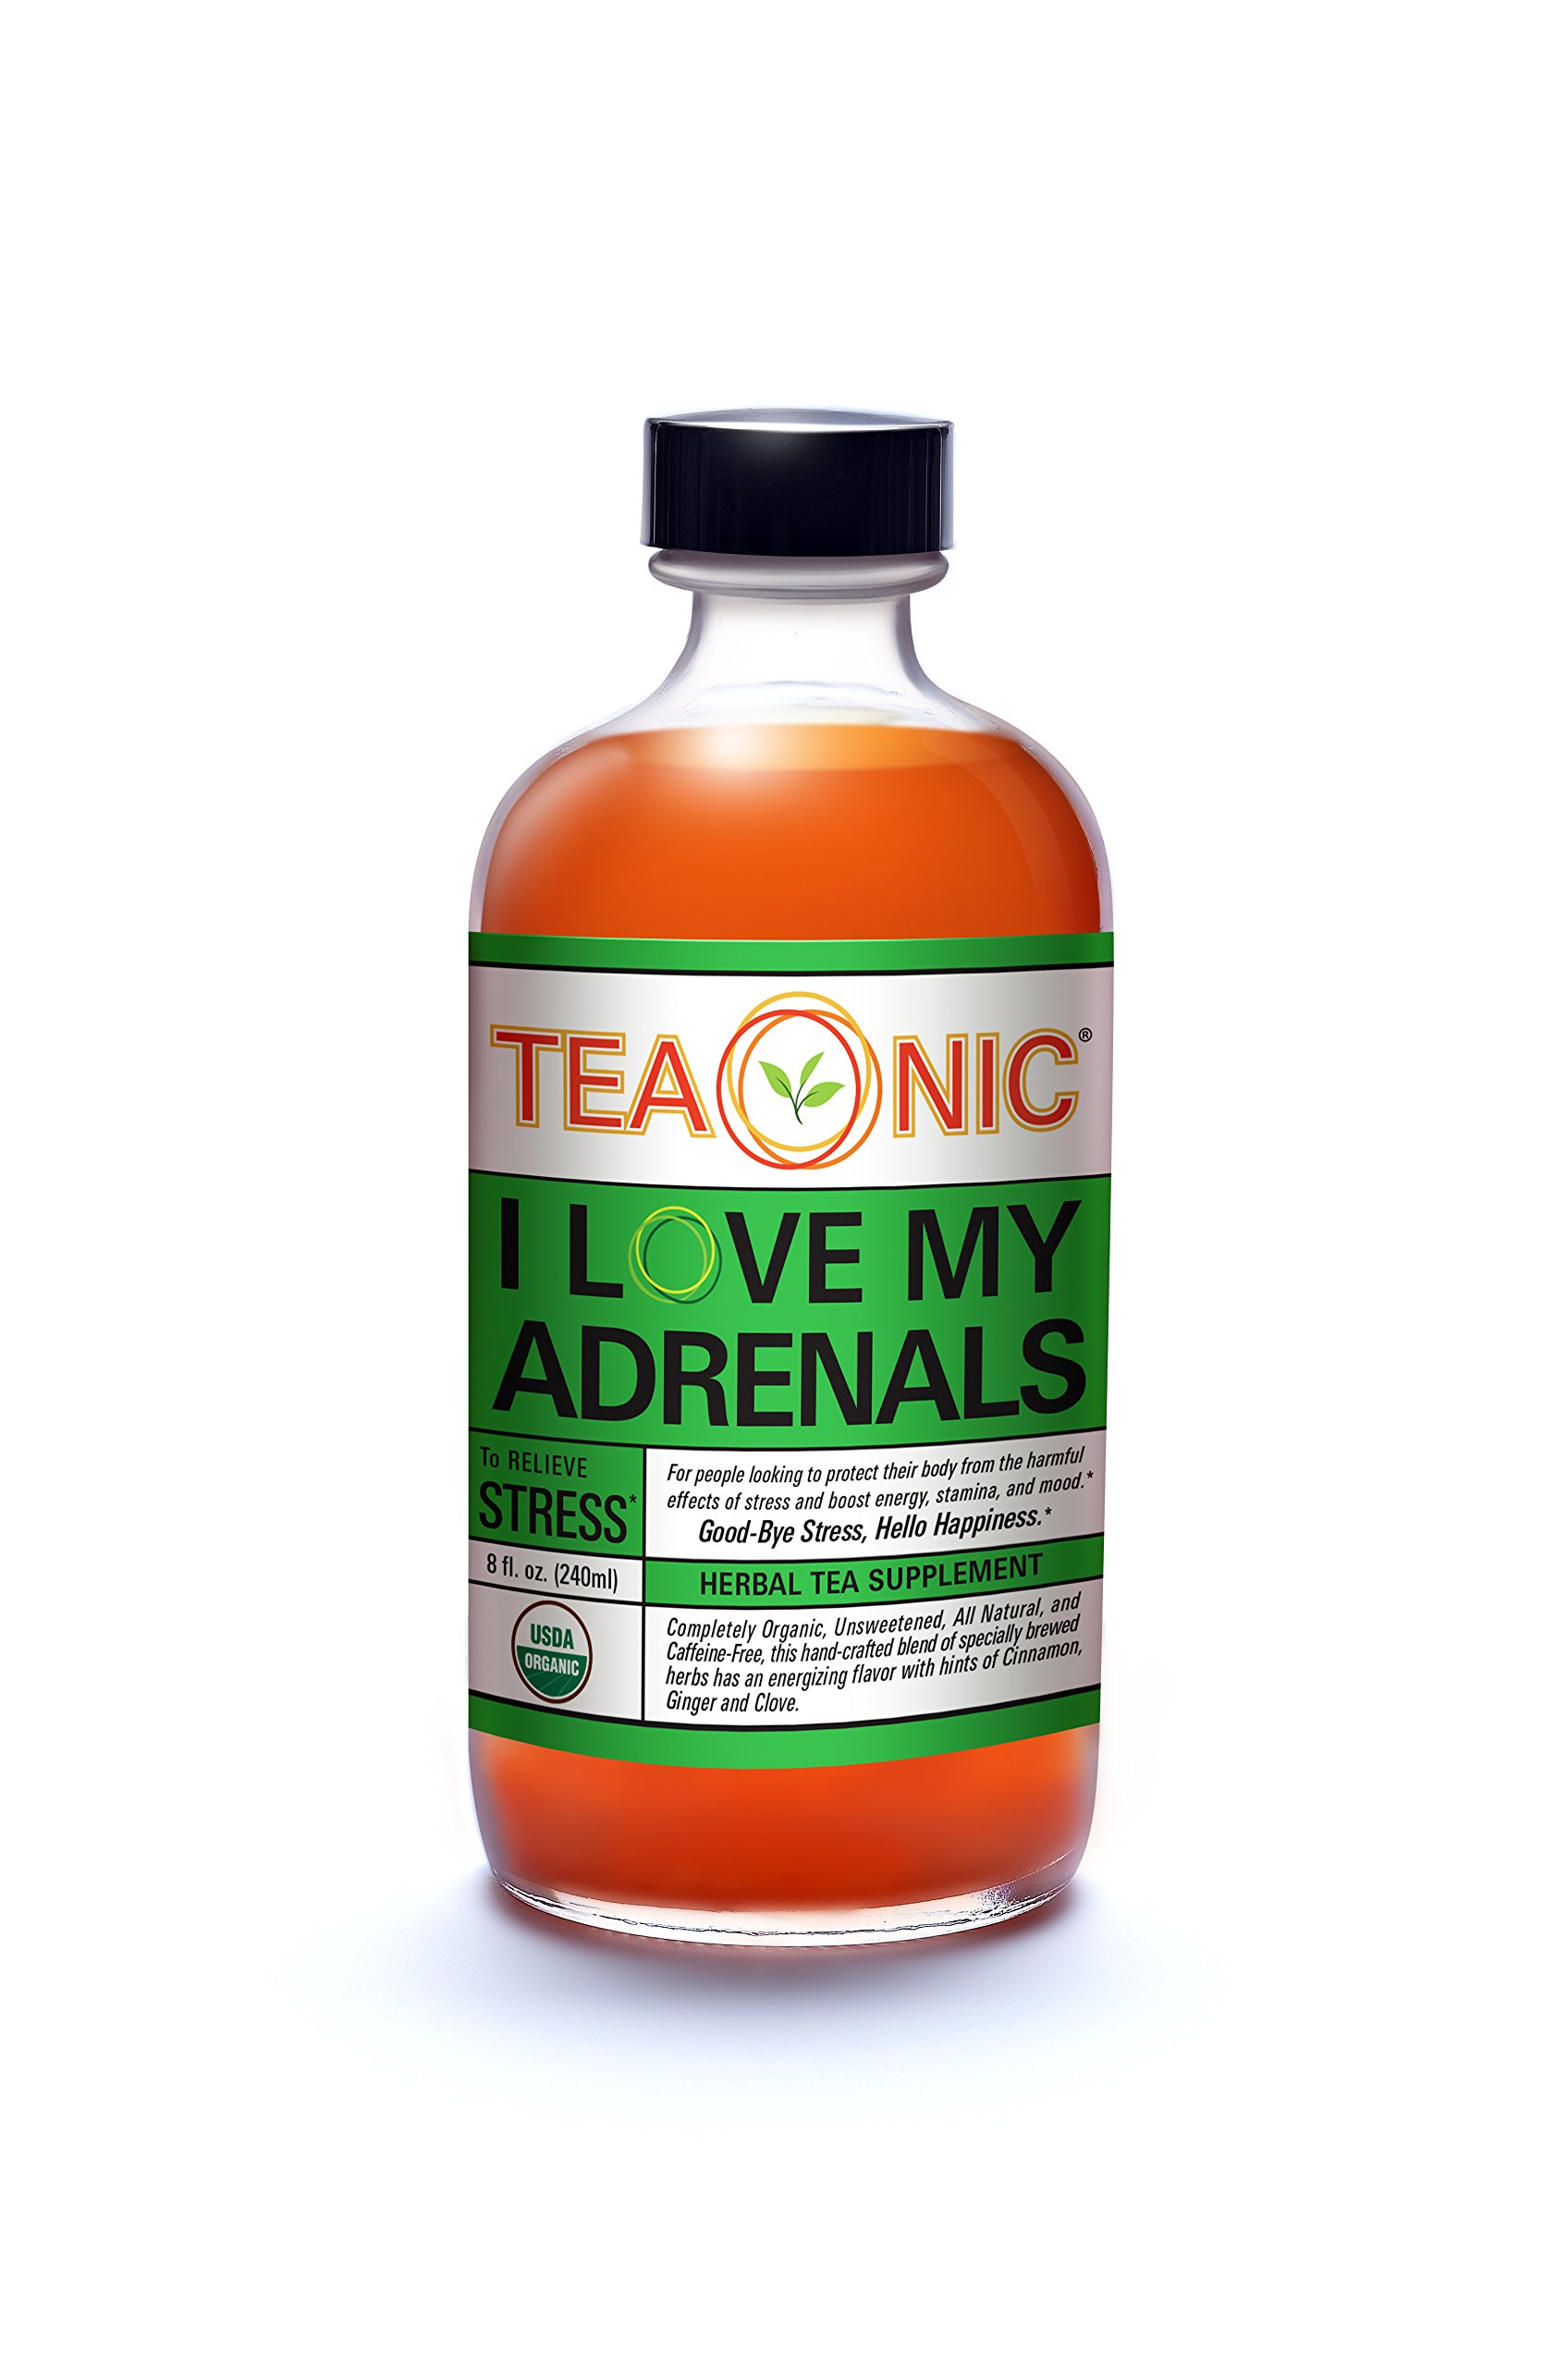 Teaonic Herbal Tea | I Love my Adrenals to Relieve Stress | Cinnamon, Clove & Ginger (12 Pack)